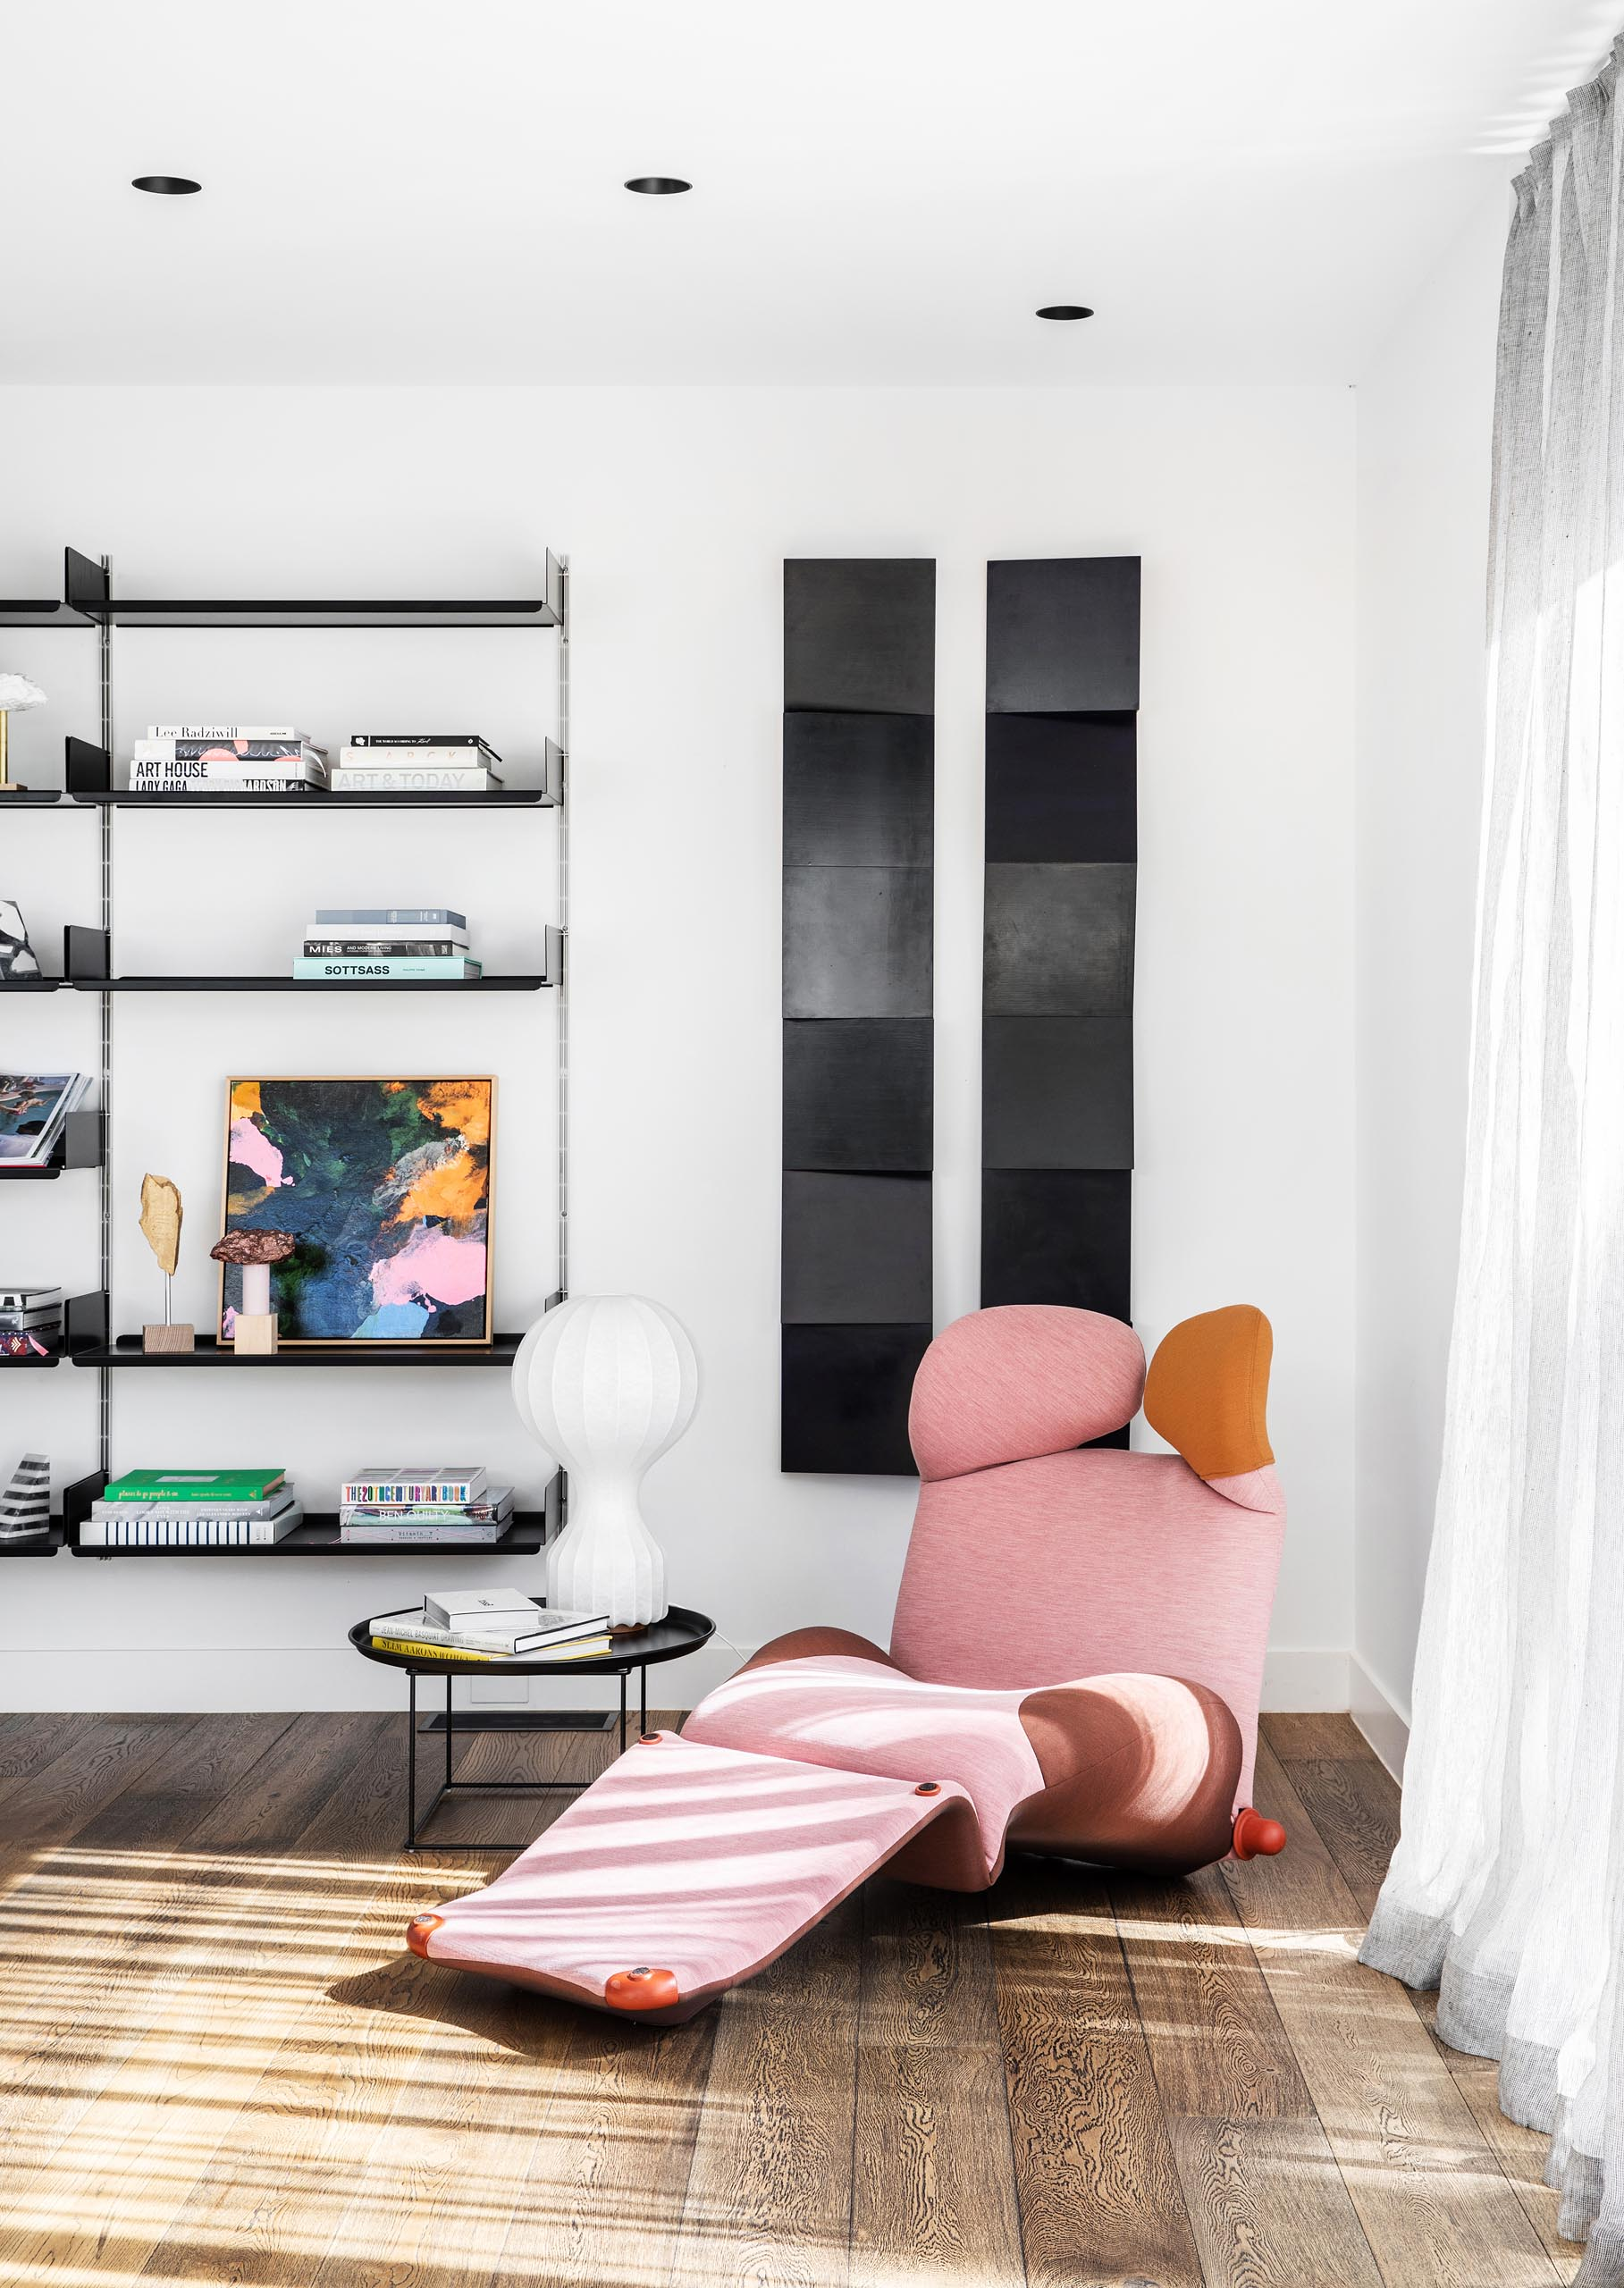 Tucked into the corner behind the living room is a small reading nook that includes a sculptural pink chaise, vertical art pieces, and a wall-mounted bookshelf.